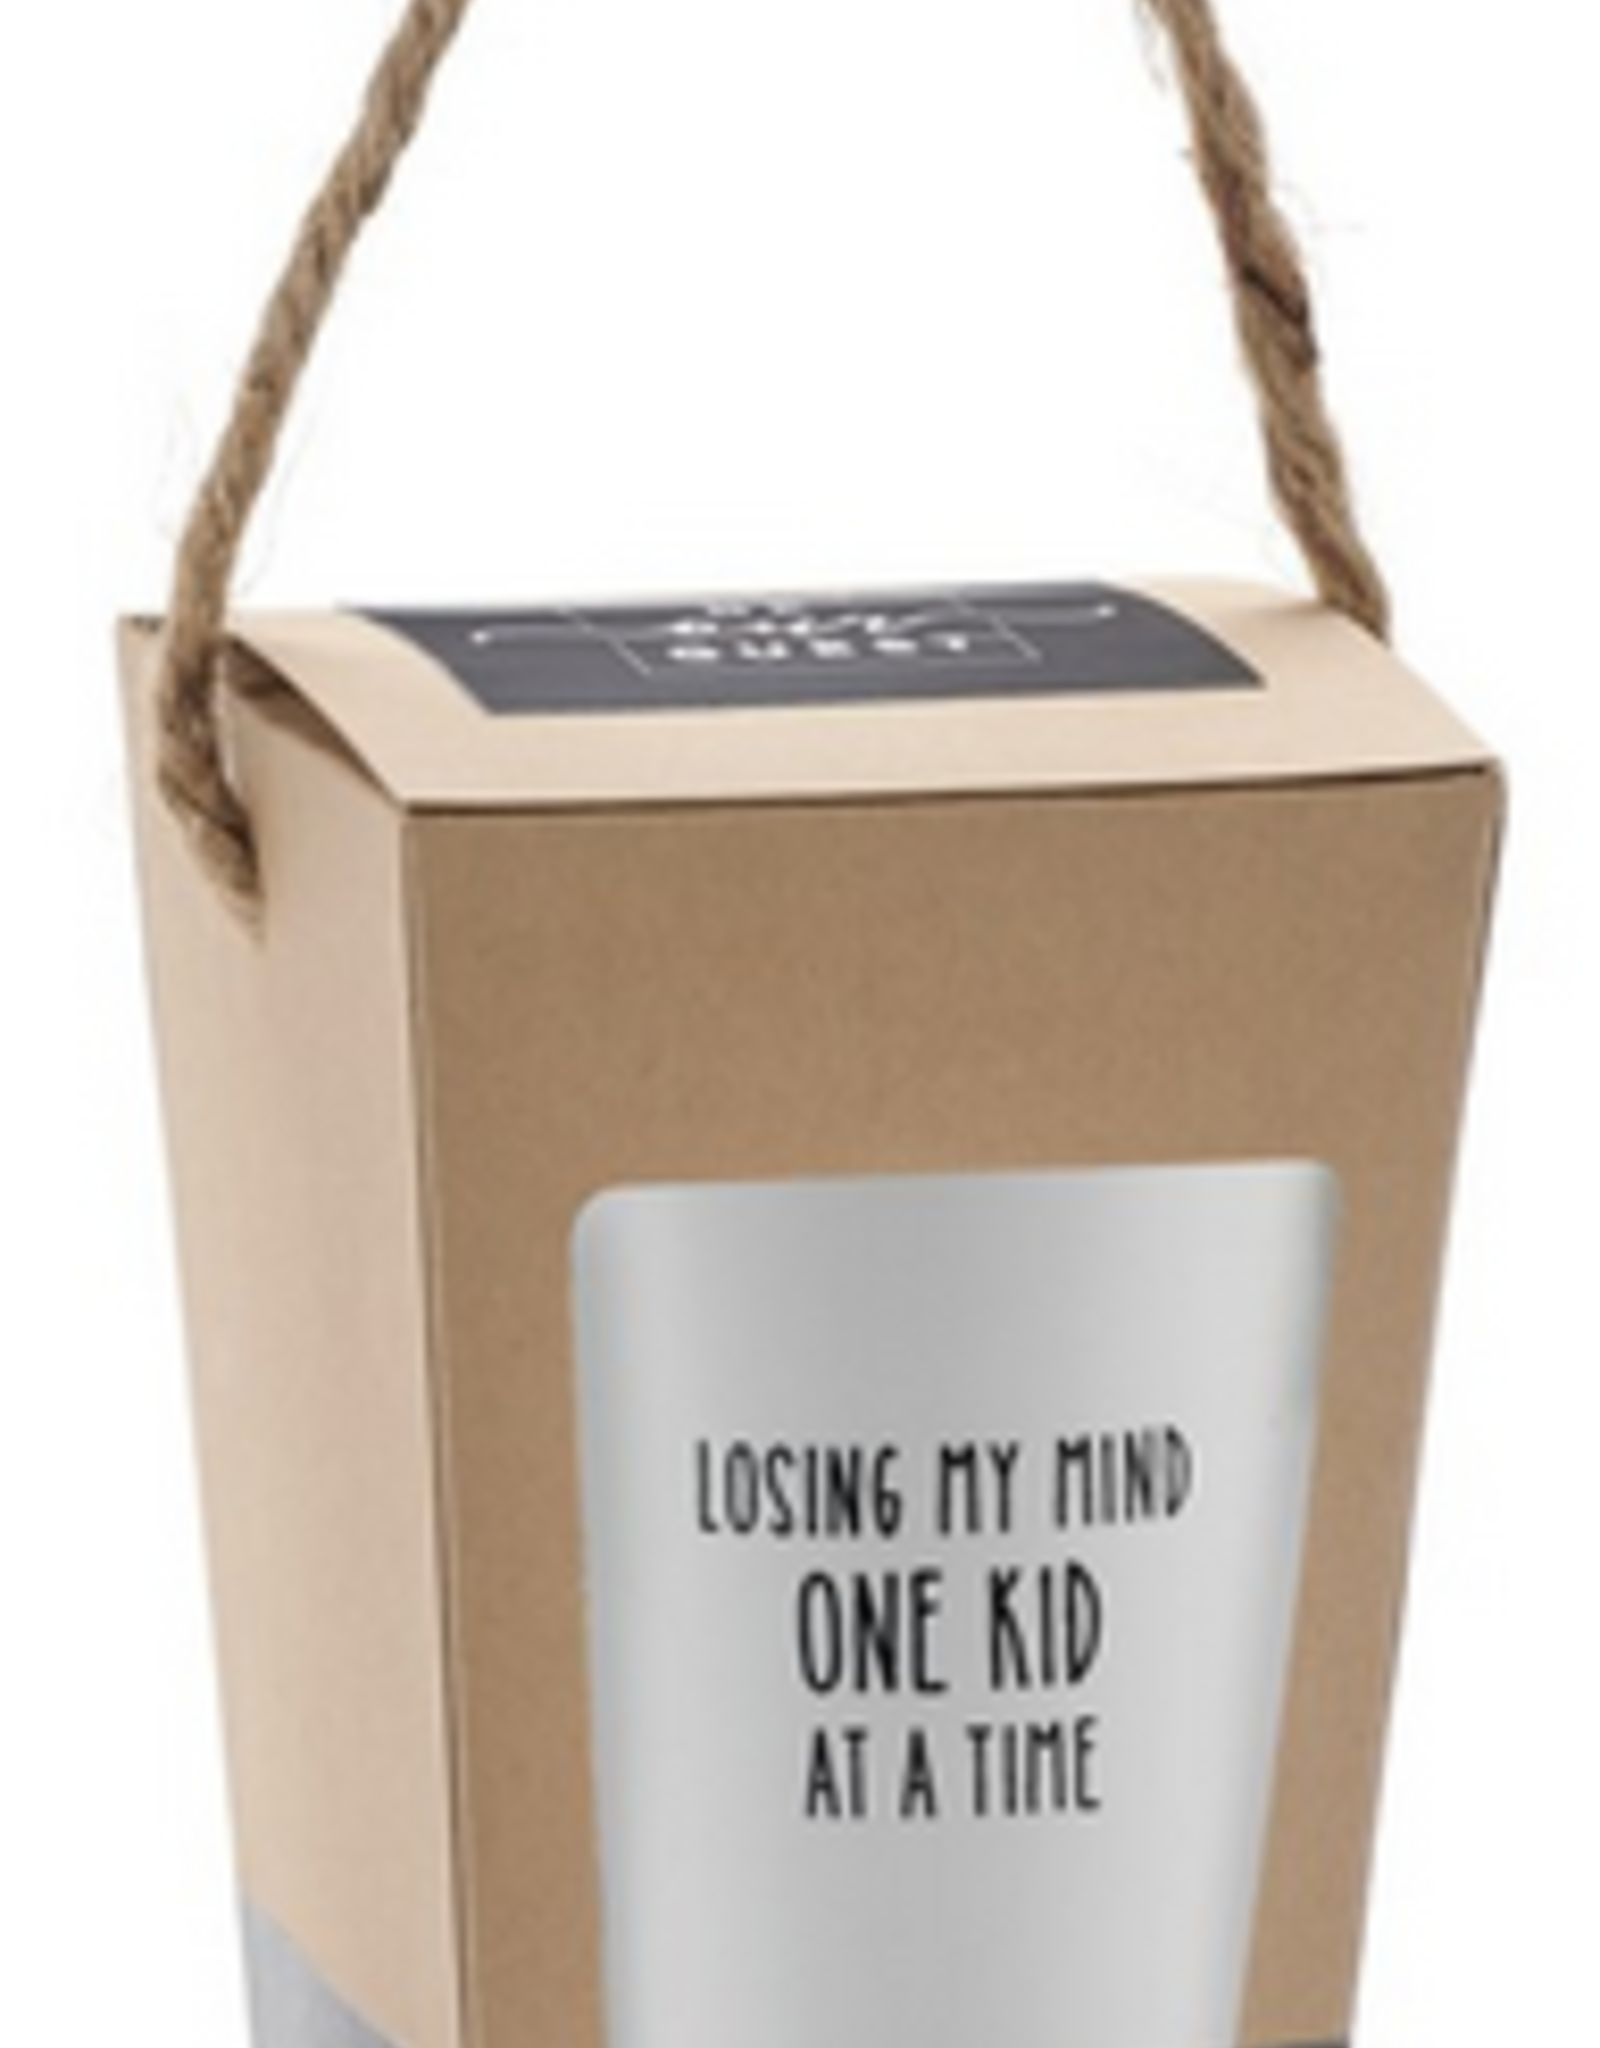 Be Our Guest Travel Mug, Losing My Mind